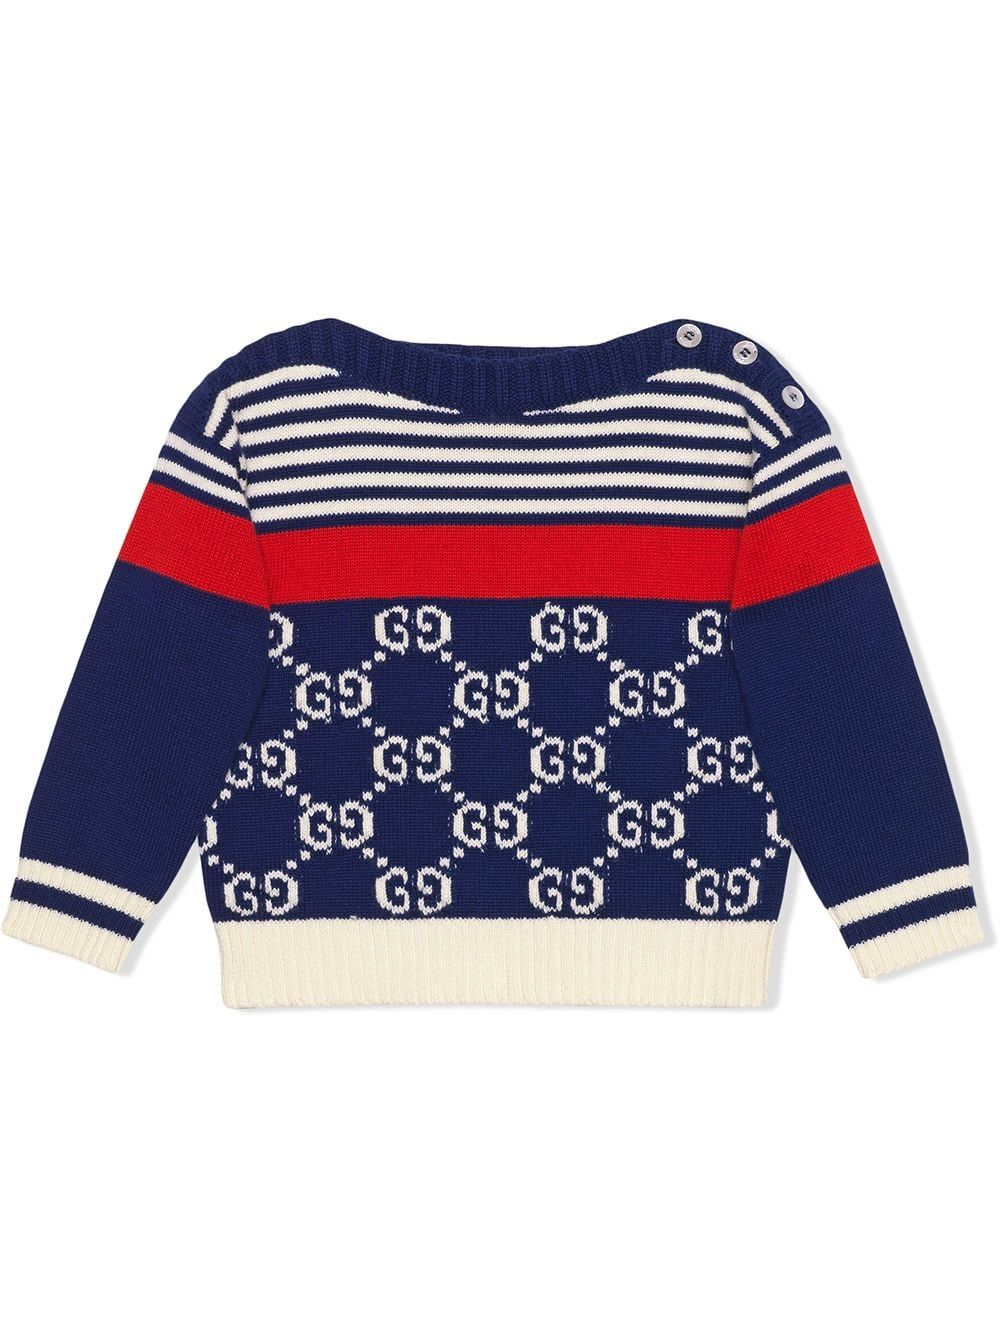 d2cd8c34d Gucci Kids Baby GG and stripes knit sweater - Blue in 2019 ...